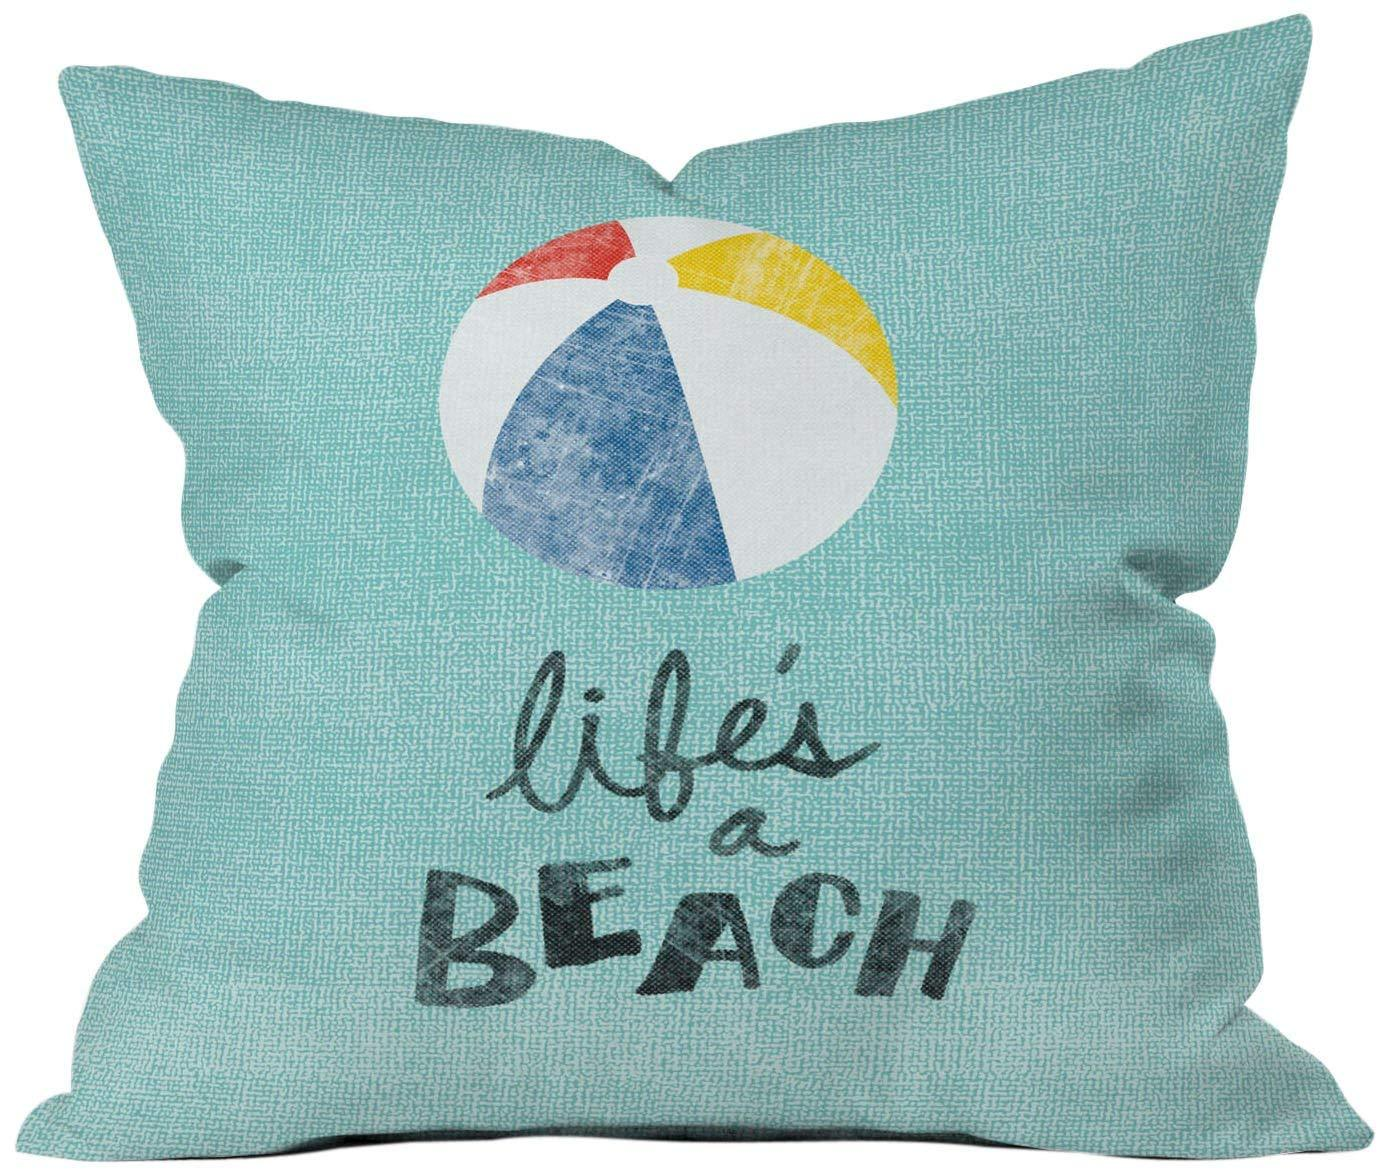 Deny Designs Nick Nelson Lifes A Beach Throw Pillow, 18 x 18